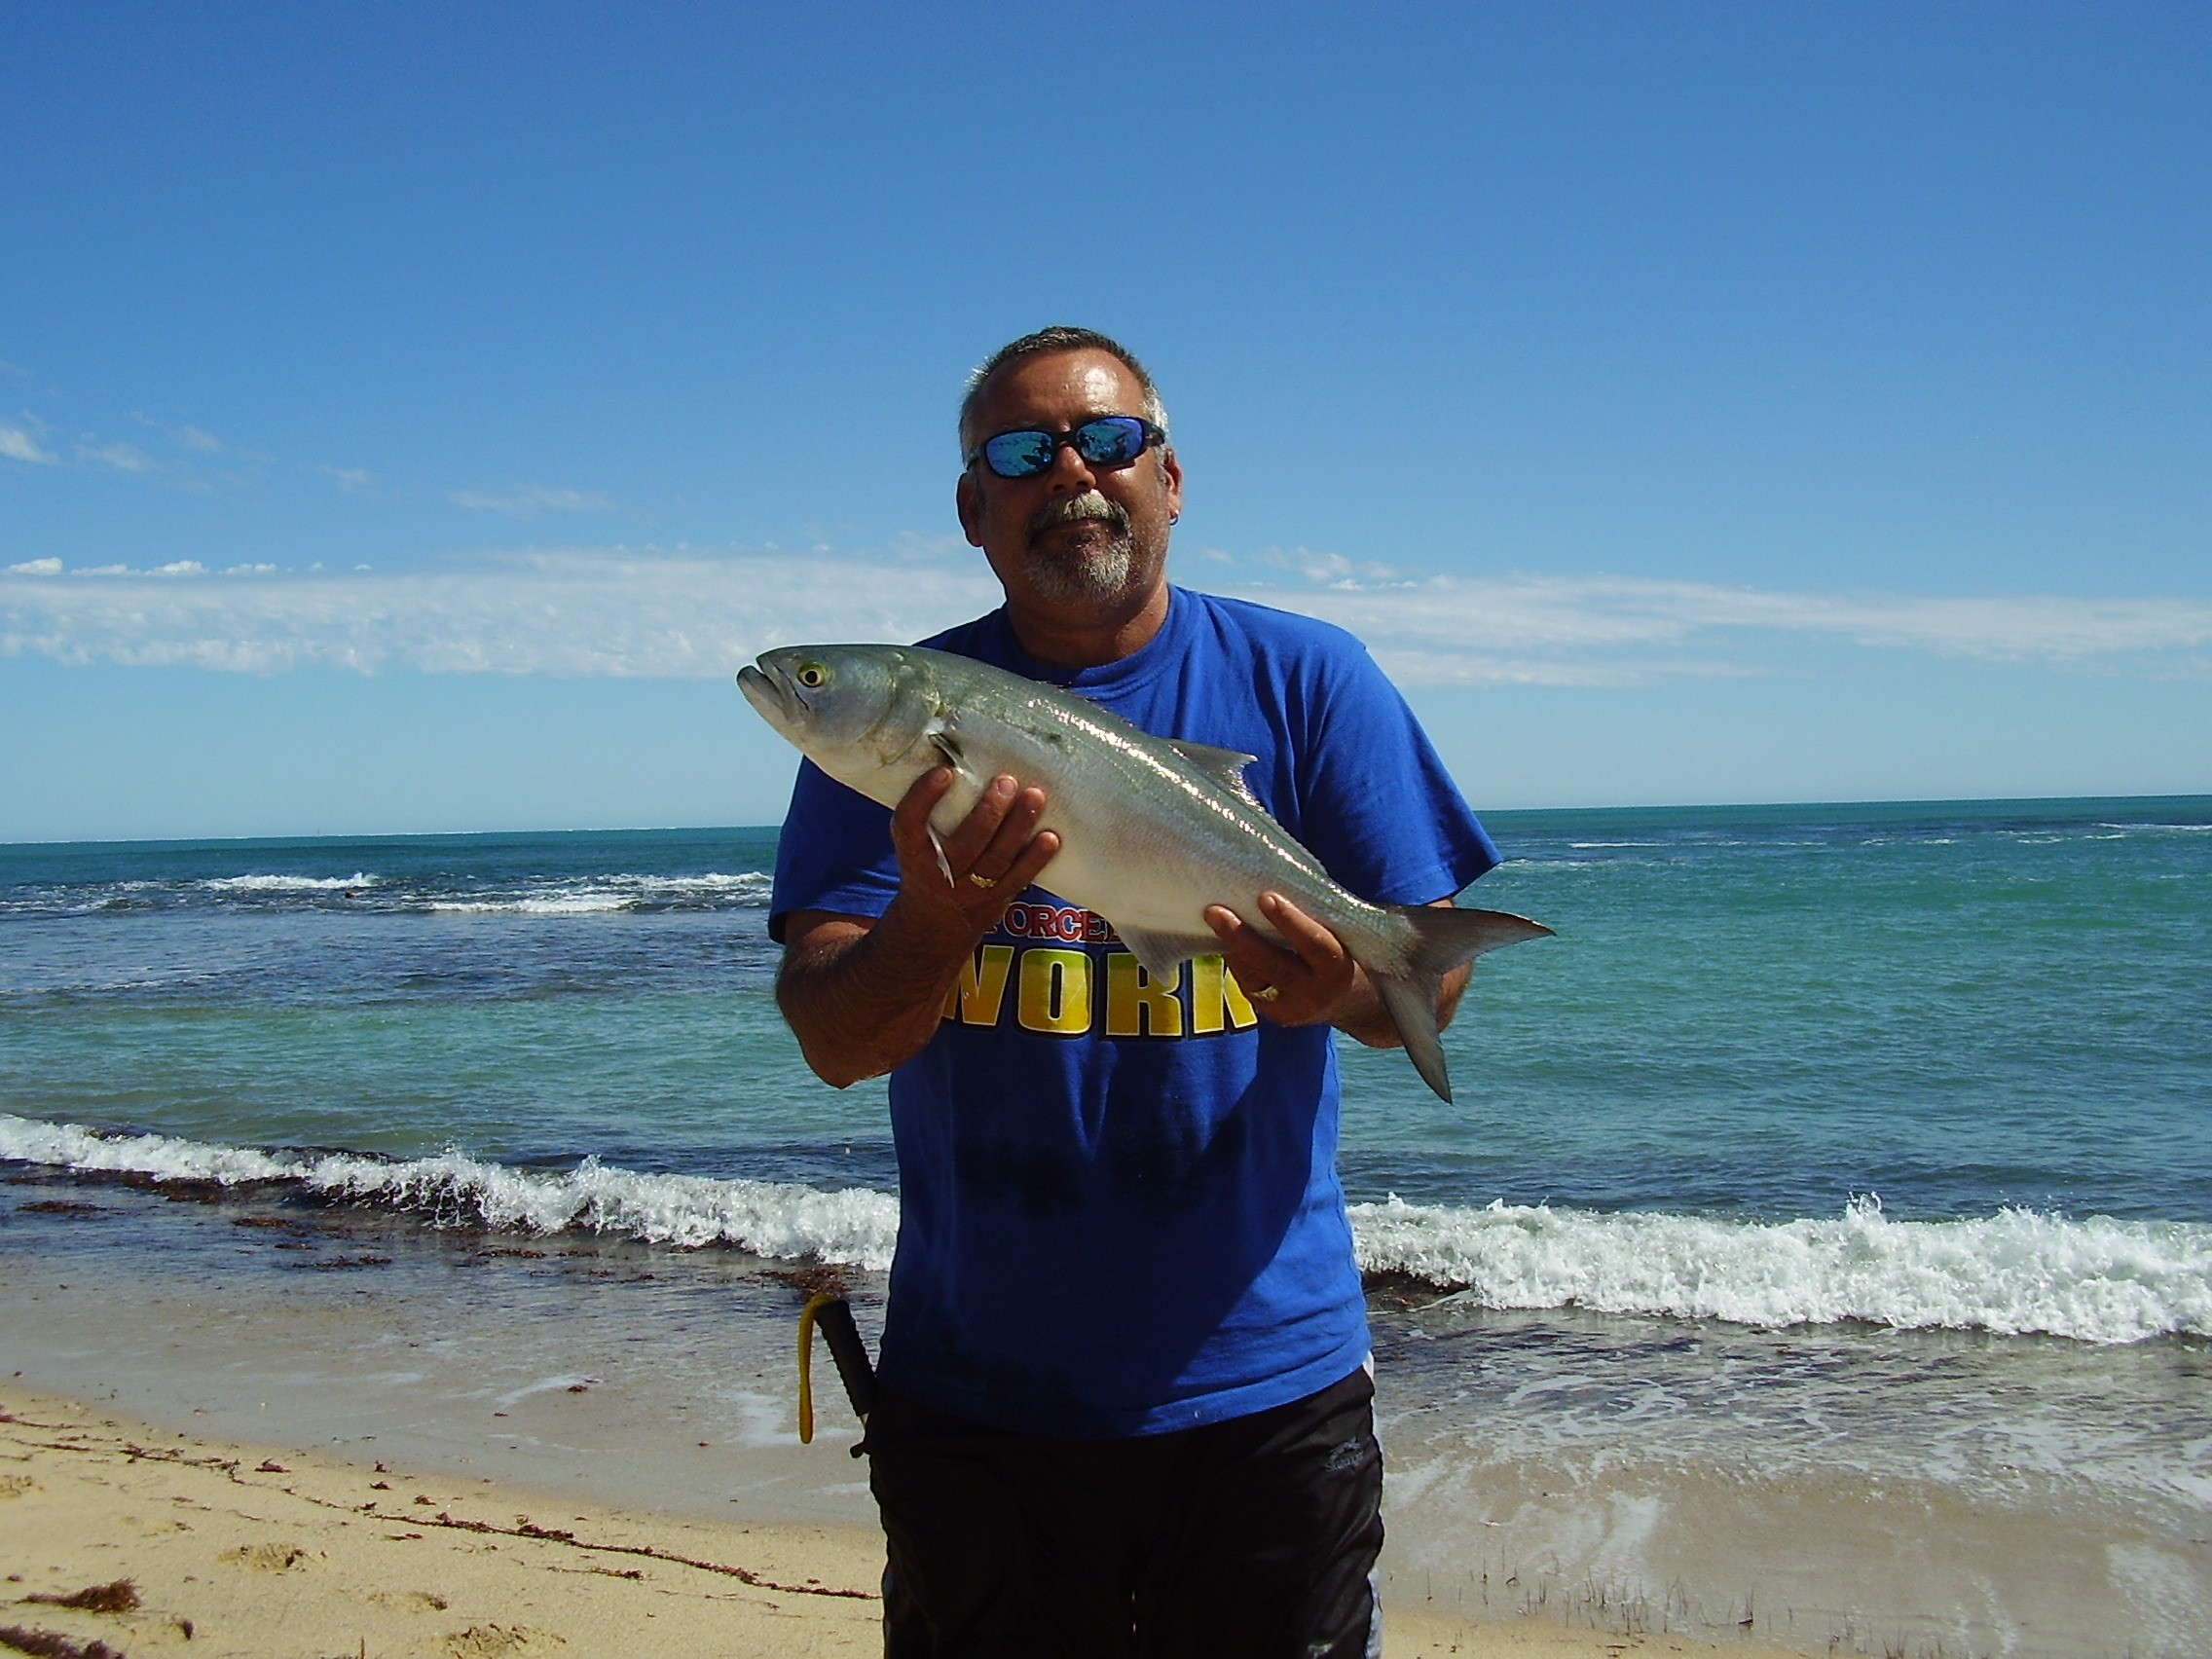 dongara men Dongara dongara is a coastal town located 351 kms north of perth via the beautiful indian ocean drive the twin towns of dongara and port denison are set on the banks of the irwin river which divides the two towns in the shire of irwin.